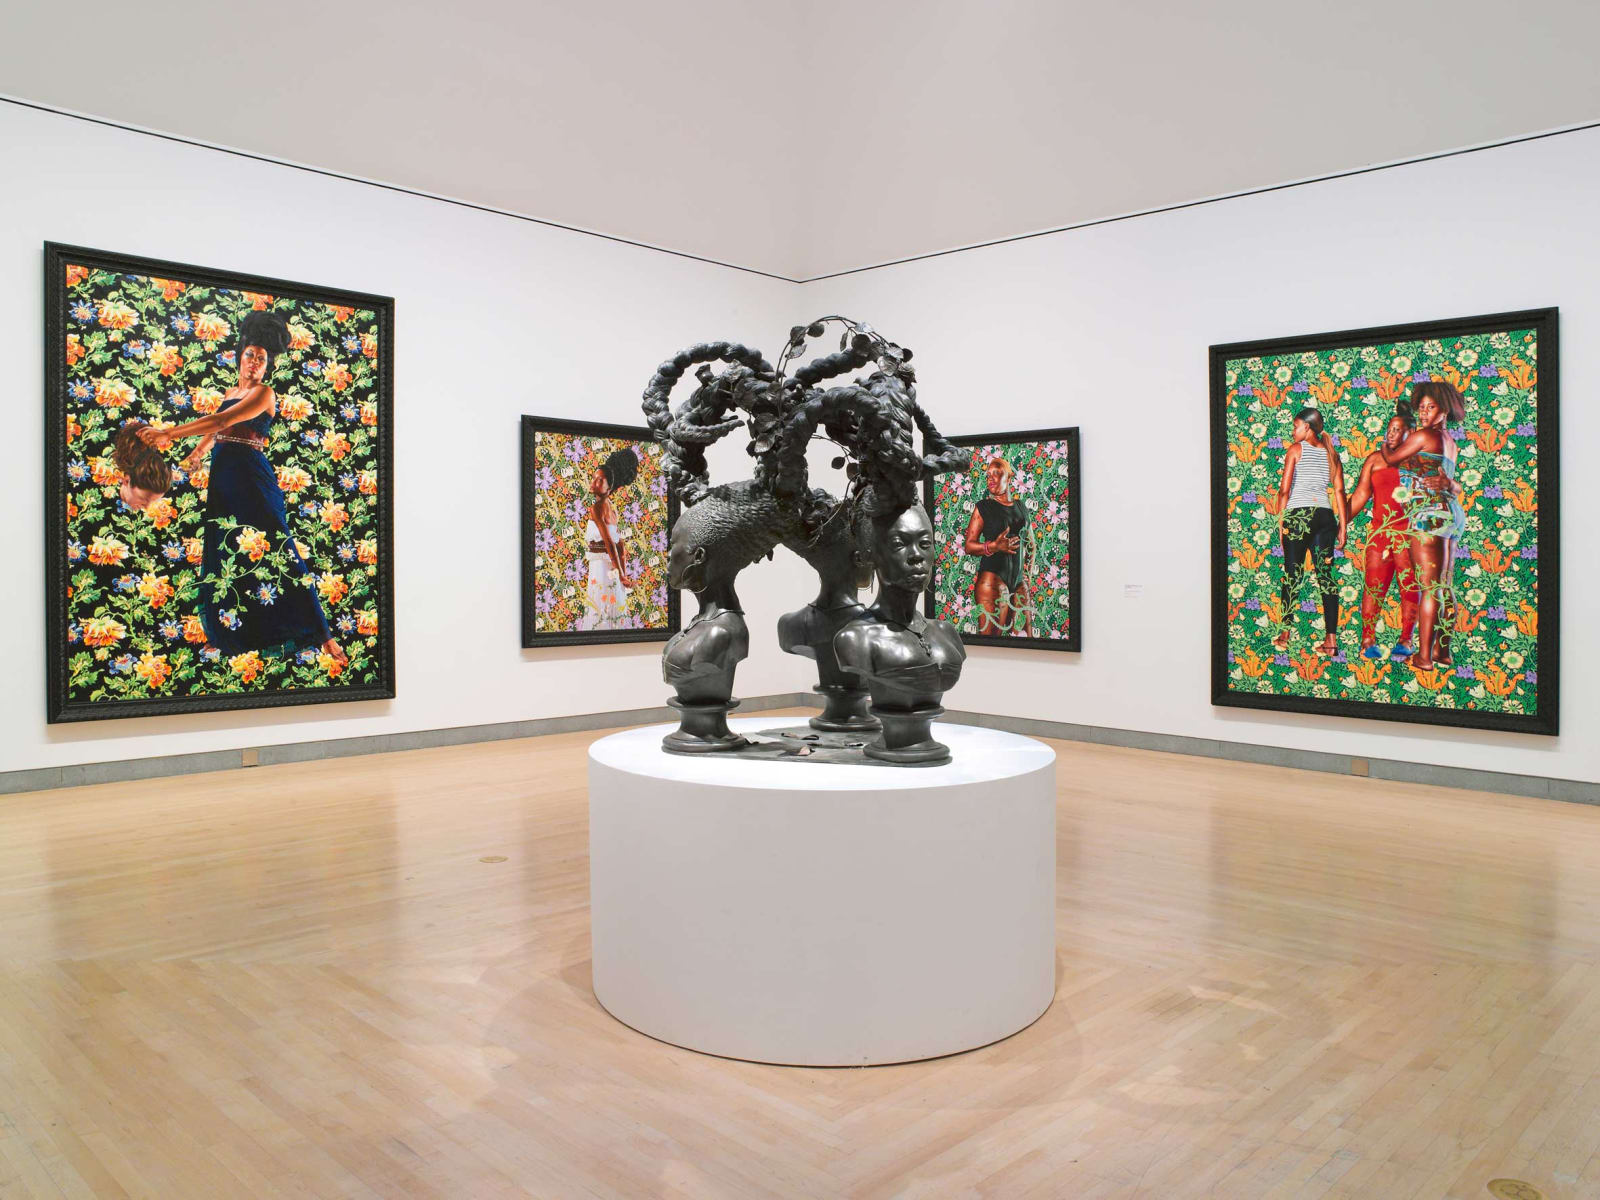 <p>Installation view: 'Kehinde Wiley: A New Republic', Brooklyn Museum, New York, NY (2015).</p>